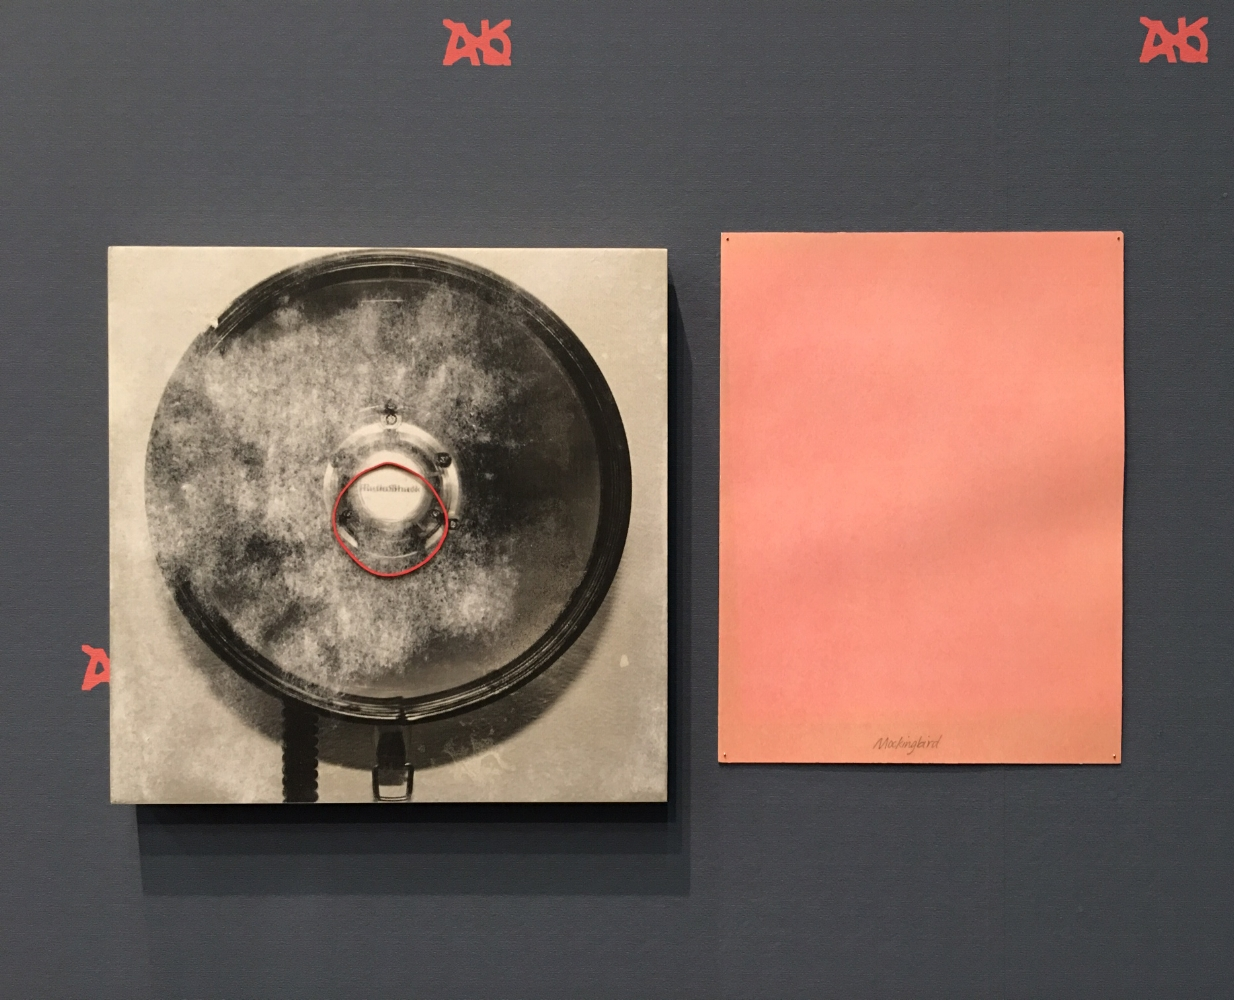 Left: Matthew Metzger,  Its A Voice With Which One Cannot Argue,  2017 acrylic, photo transfer, oil on panel,30.5 cm x 30.5 cm (12 x 12 in) Right: Matthew Metzger,  Mockingbird , 2017, gesso and oil on paper,22.86 x 31.75 cm (9 x 12.5 in) installation view